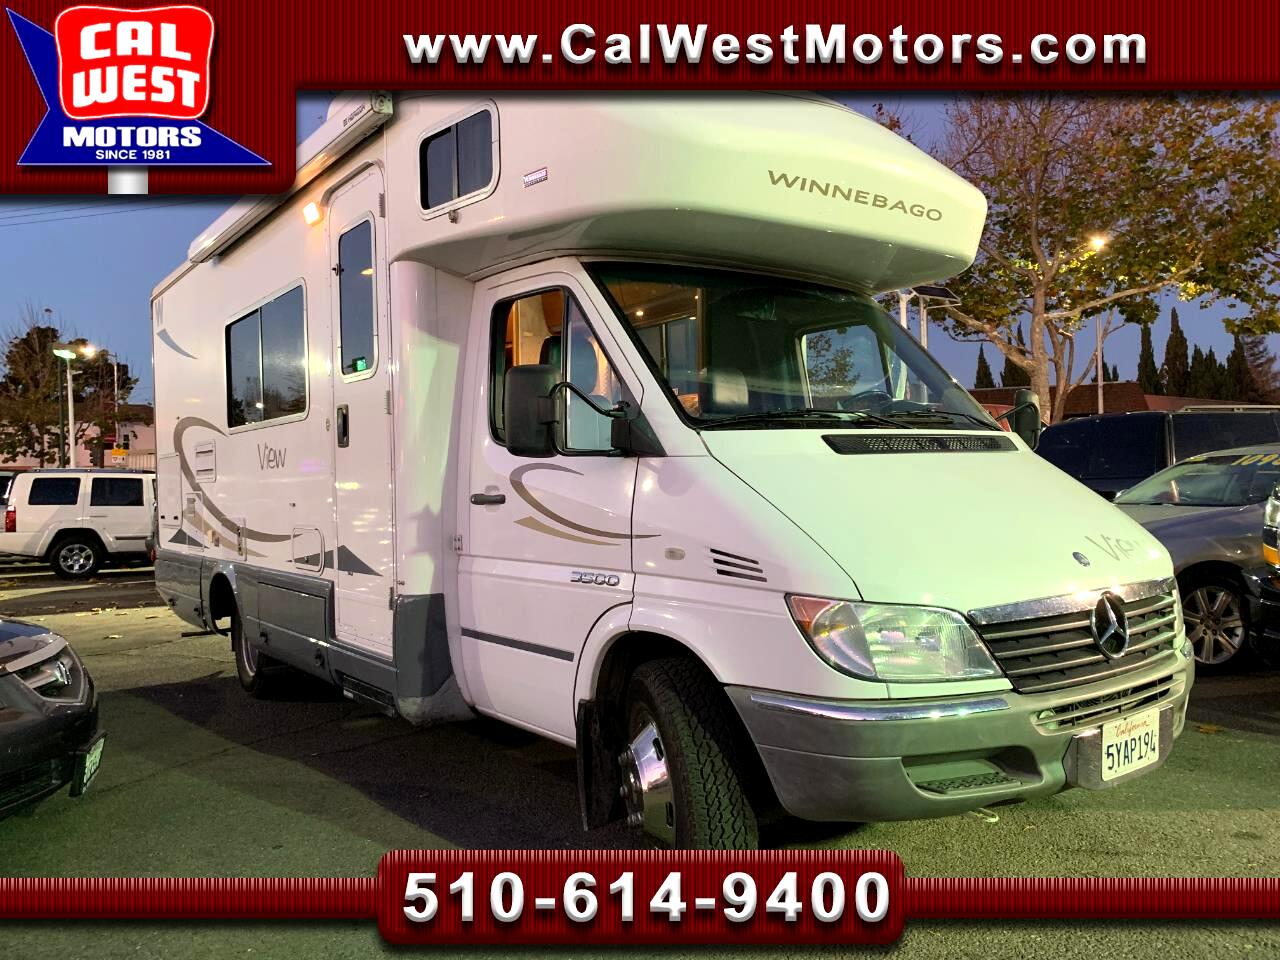 2007 Dodge Sprinter WINNEBAGO 23FT Motorhome 23FT 1Owner MPG+ Nice!